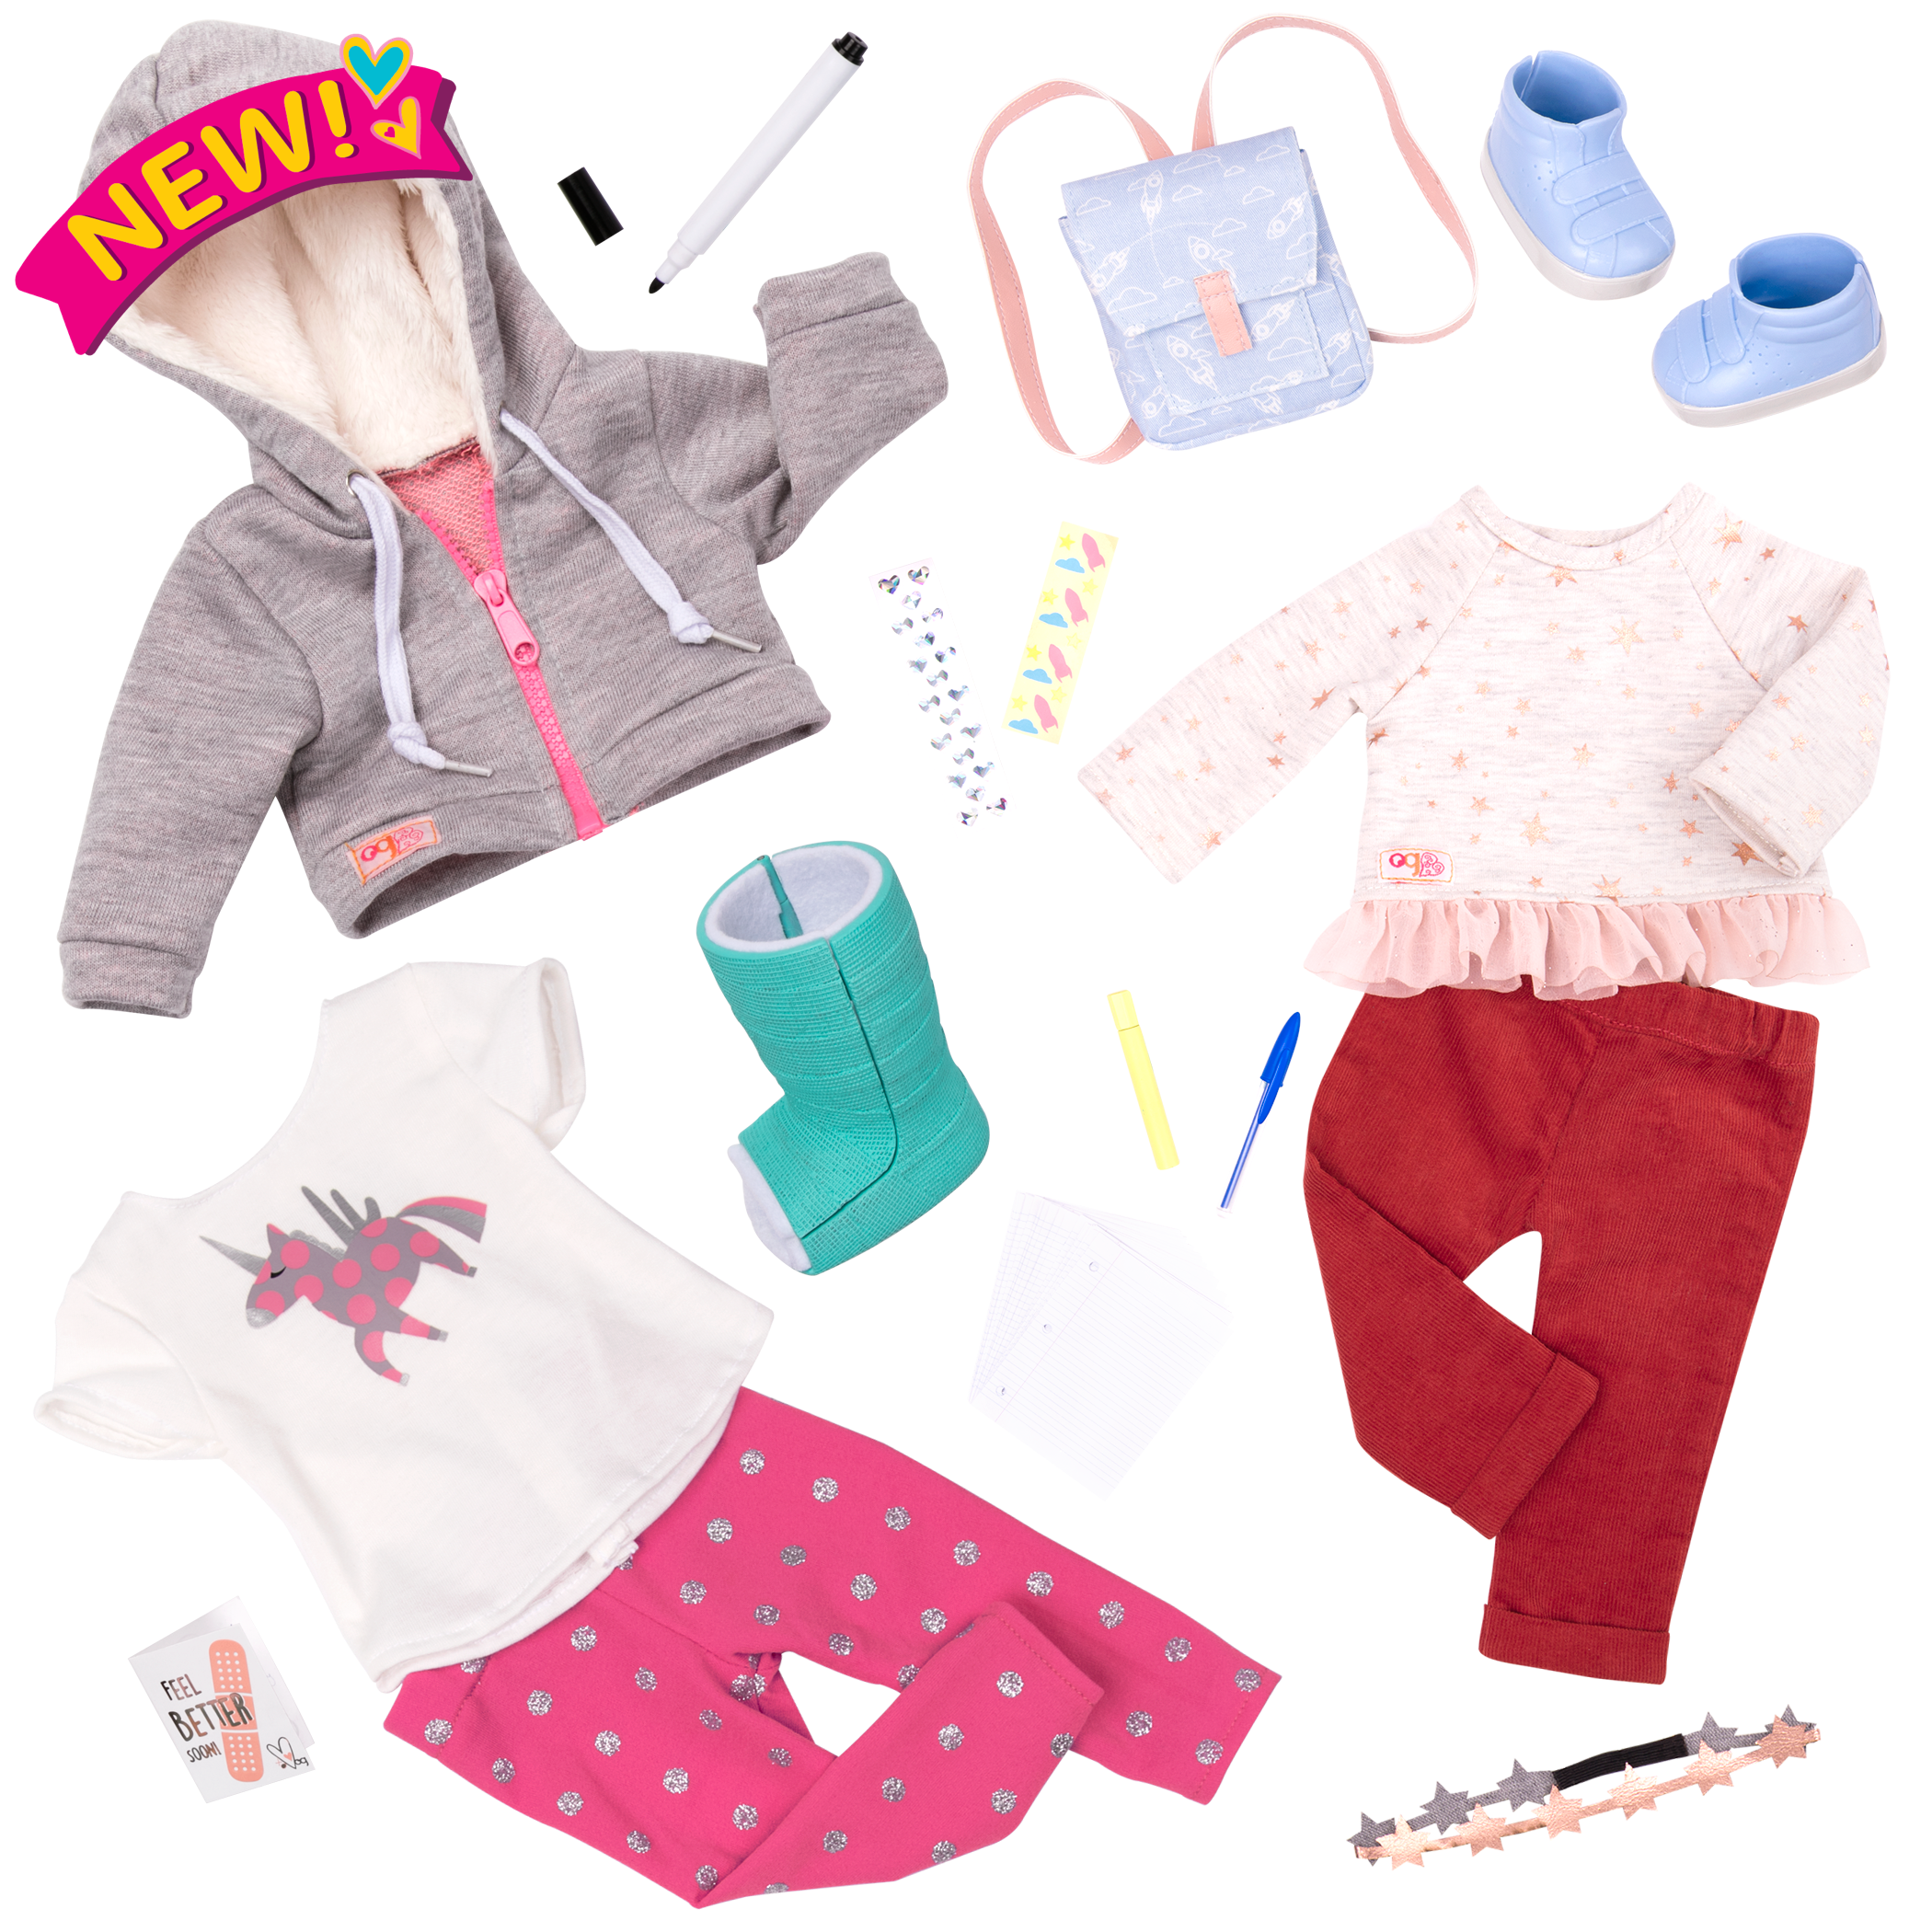 Best Medecine outfit bundle all components